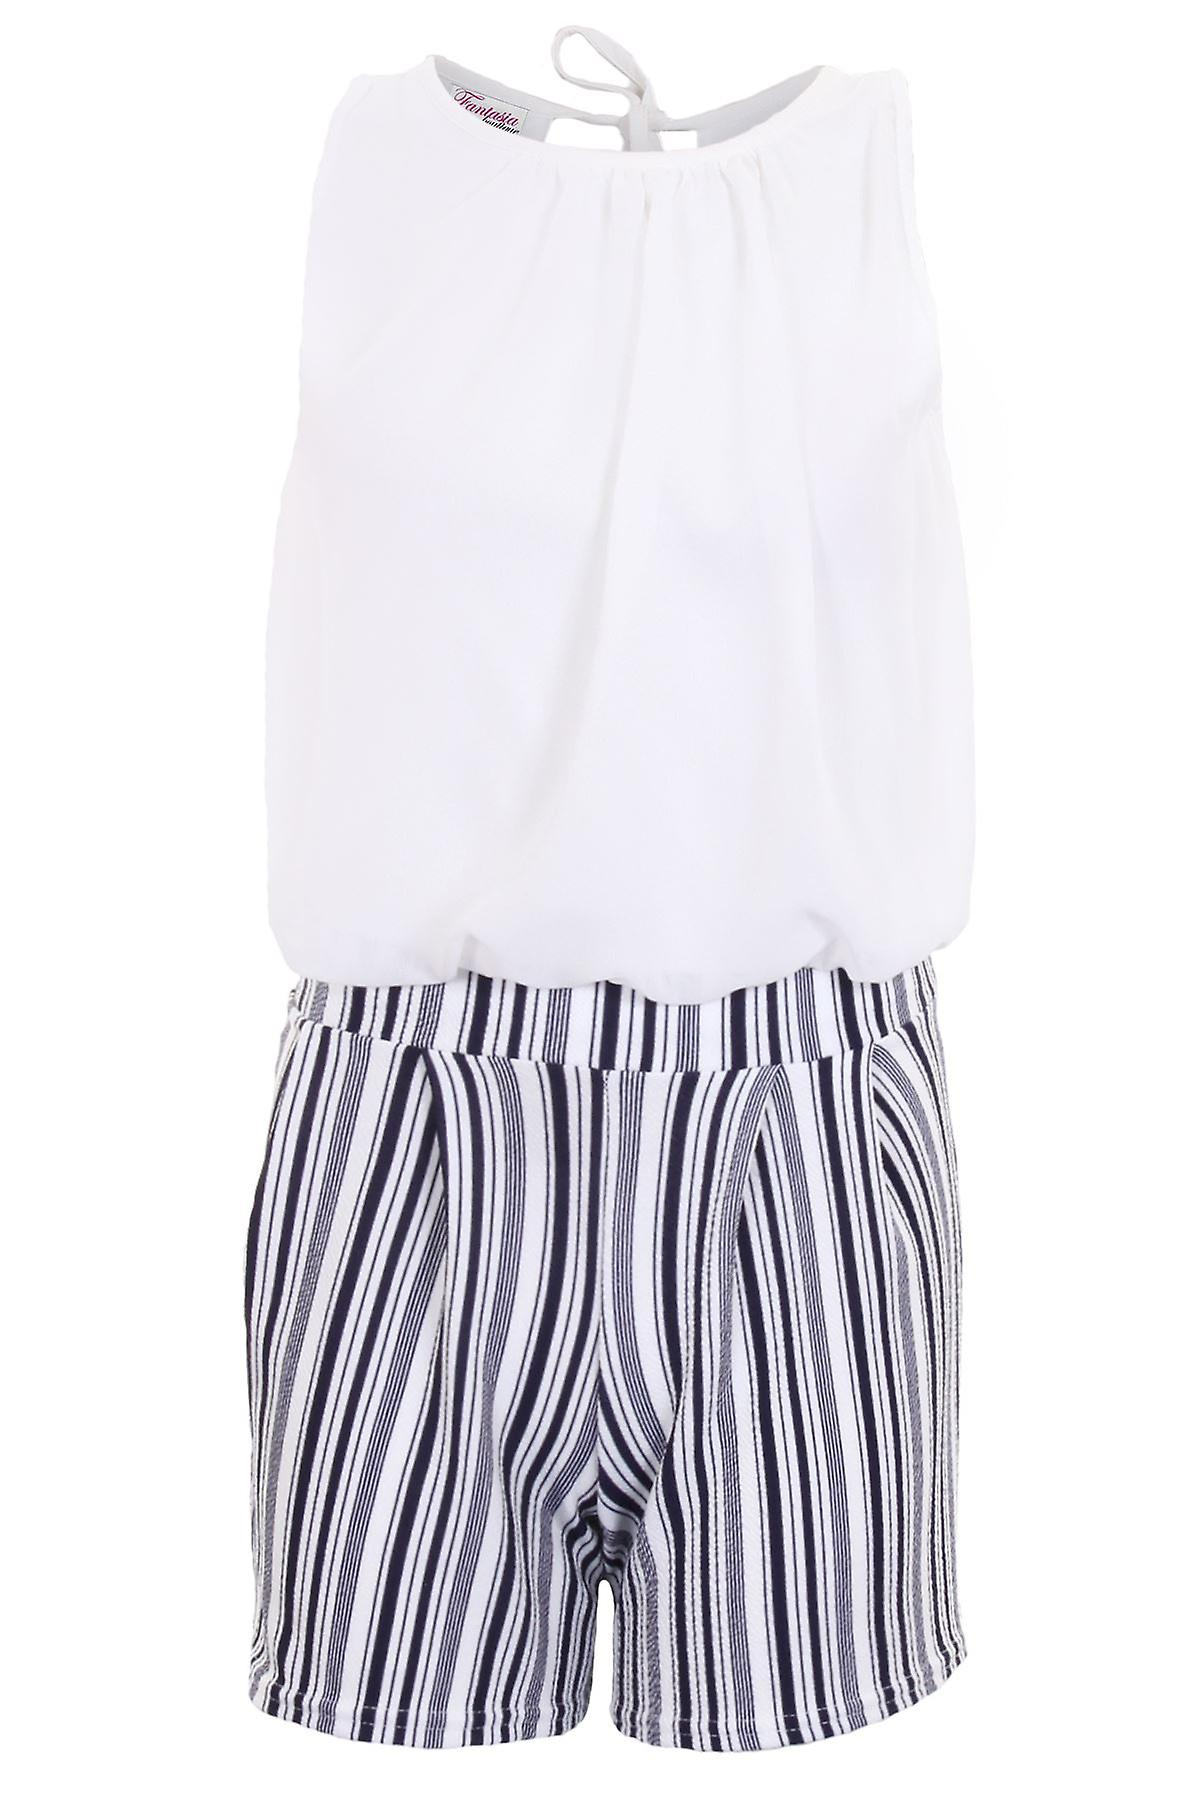 Ladies Vertical Stripe Crepe Shorts Rompa Lined Chiffon Tie Back Top Playsuit